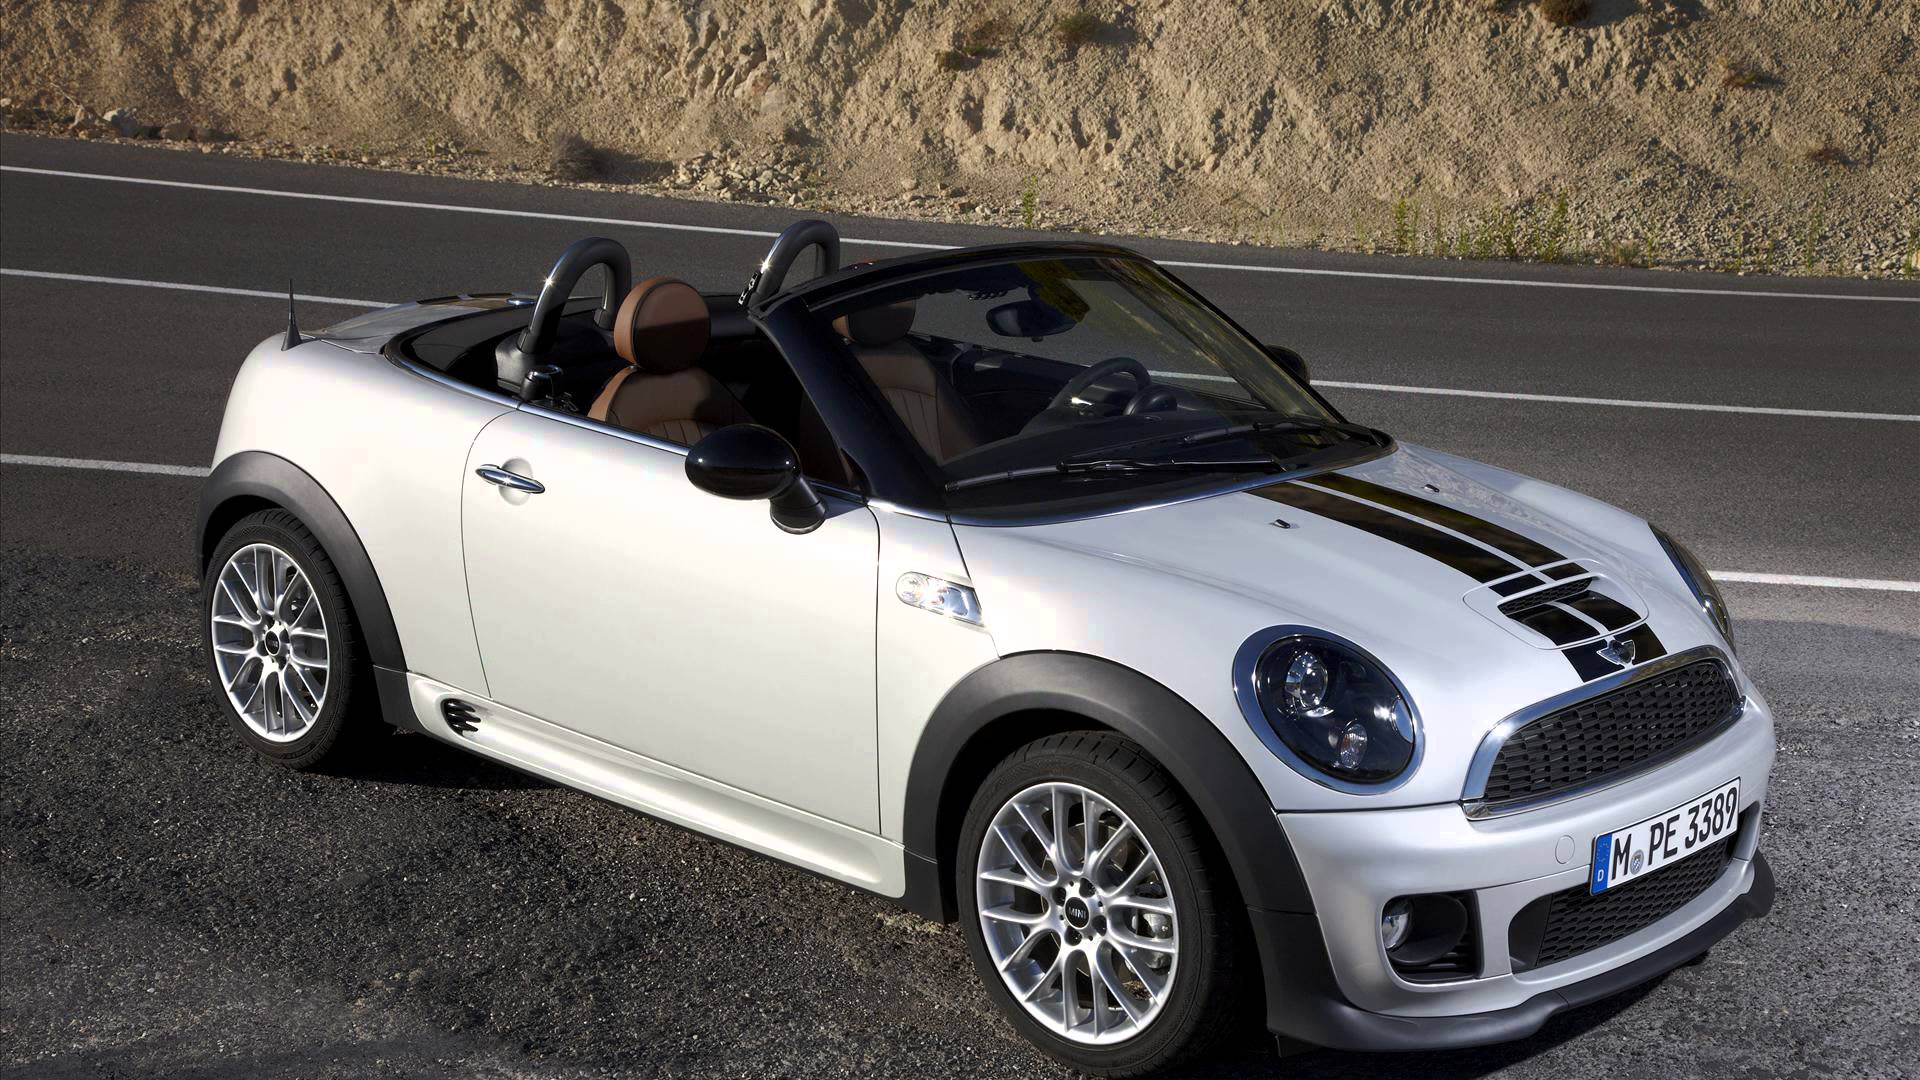 2015 mini cooper roadster information and photos zombiedrive. Black Bedroom Furniture Sets. Home Design Ideas